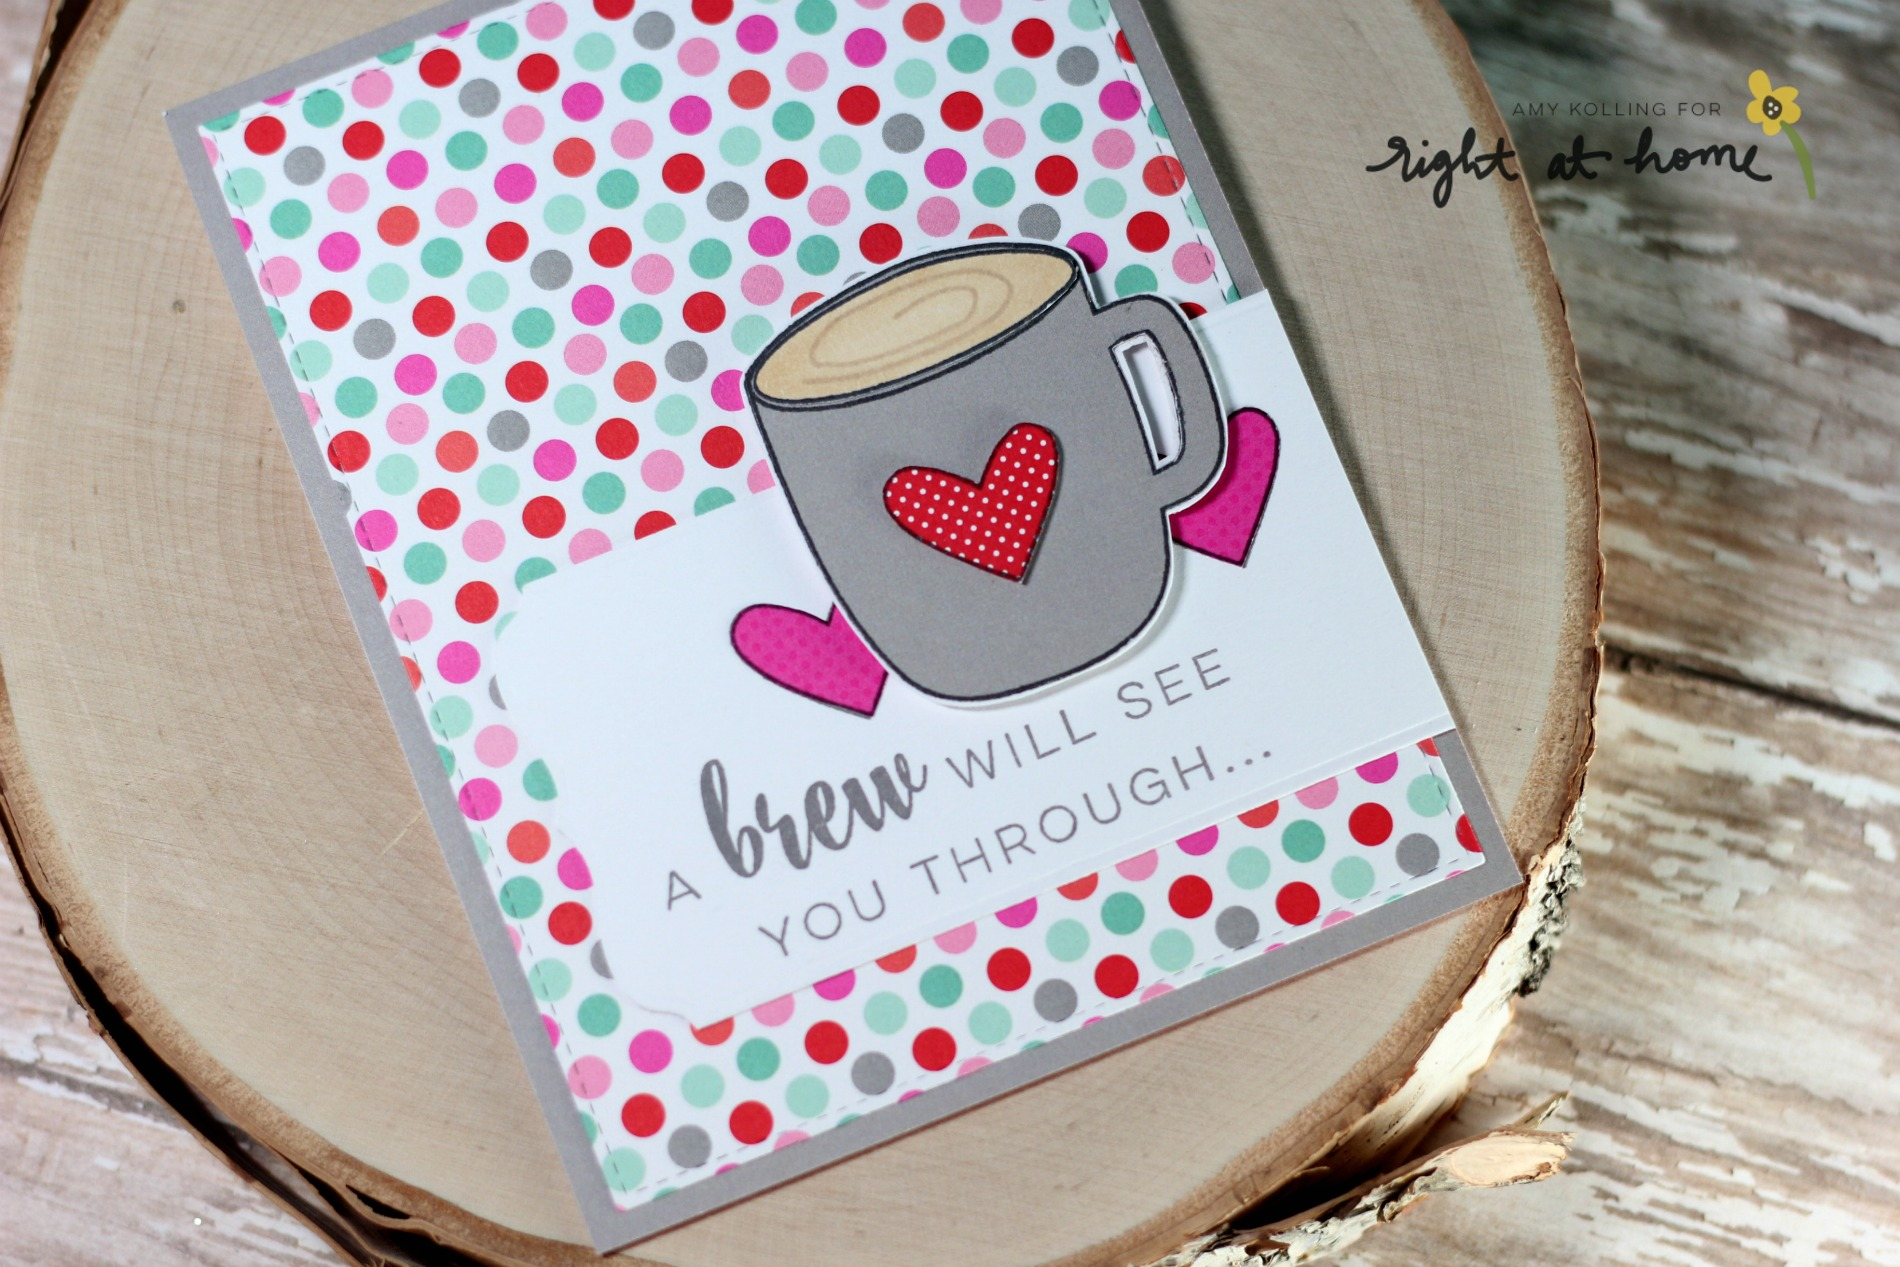 A Brew Will See You Through Card by Amy K. // RAH Stamps Cup of Joy Release - rightathomeshop.com/blog